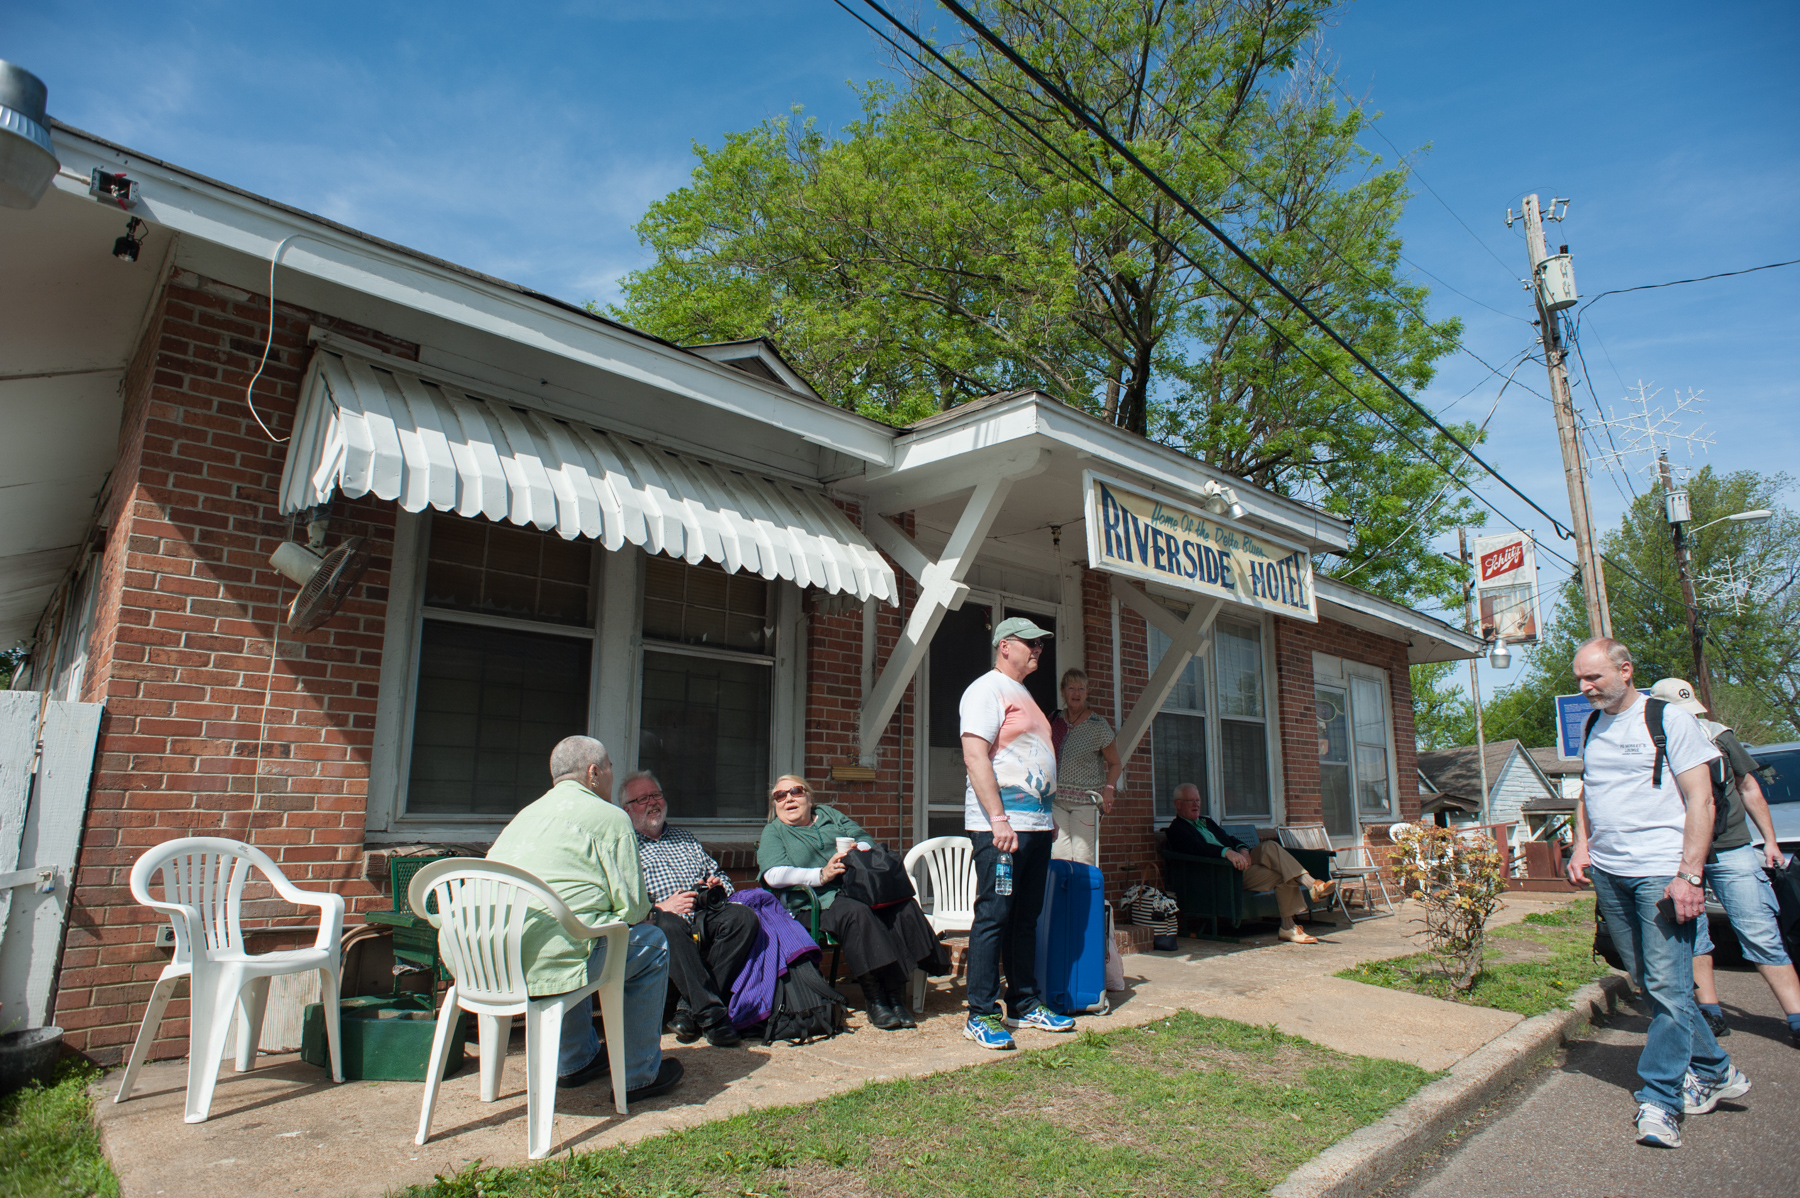 Members of the group relax in front of the Riverside Hotel, a former hospital for African Americans in Clarksdale.